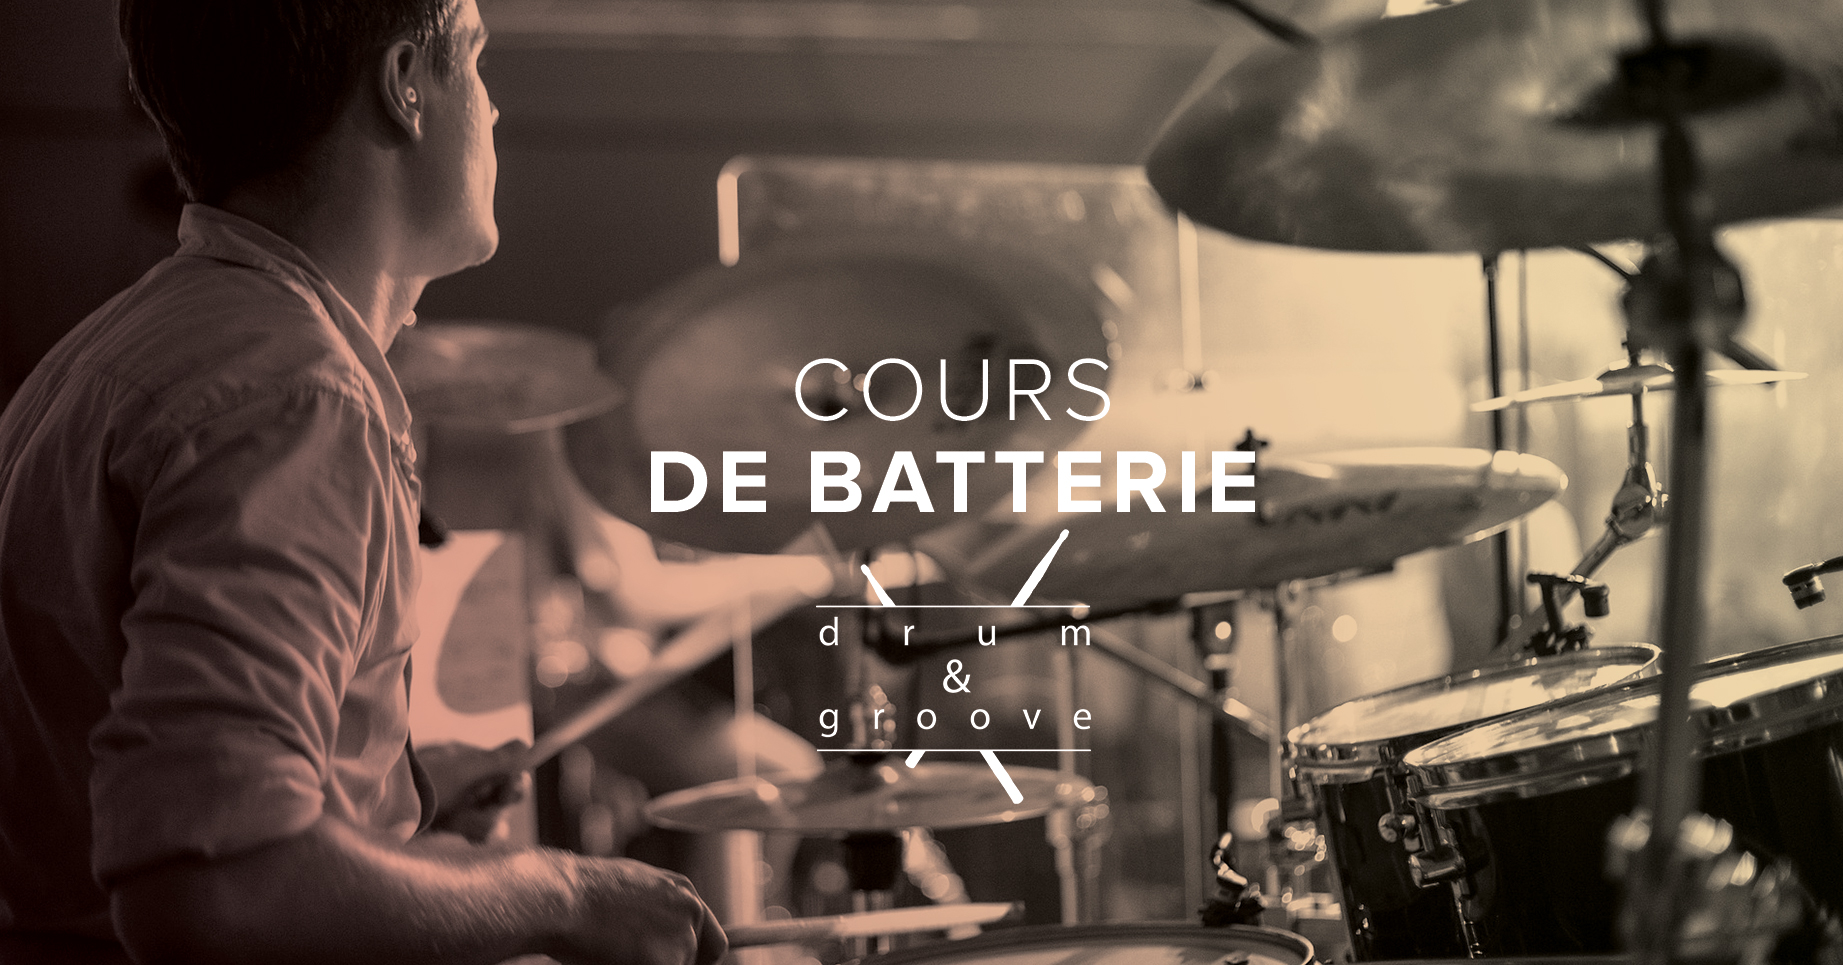 fb-cours-batterie-ados.jpg